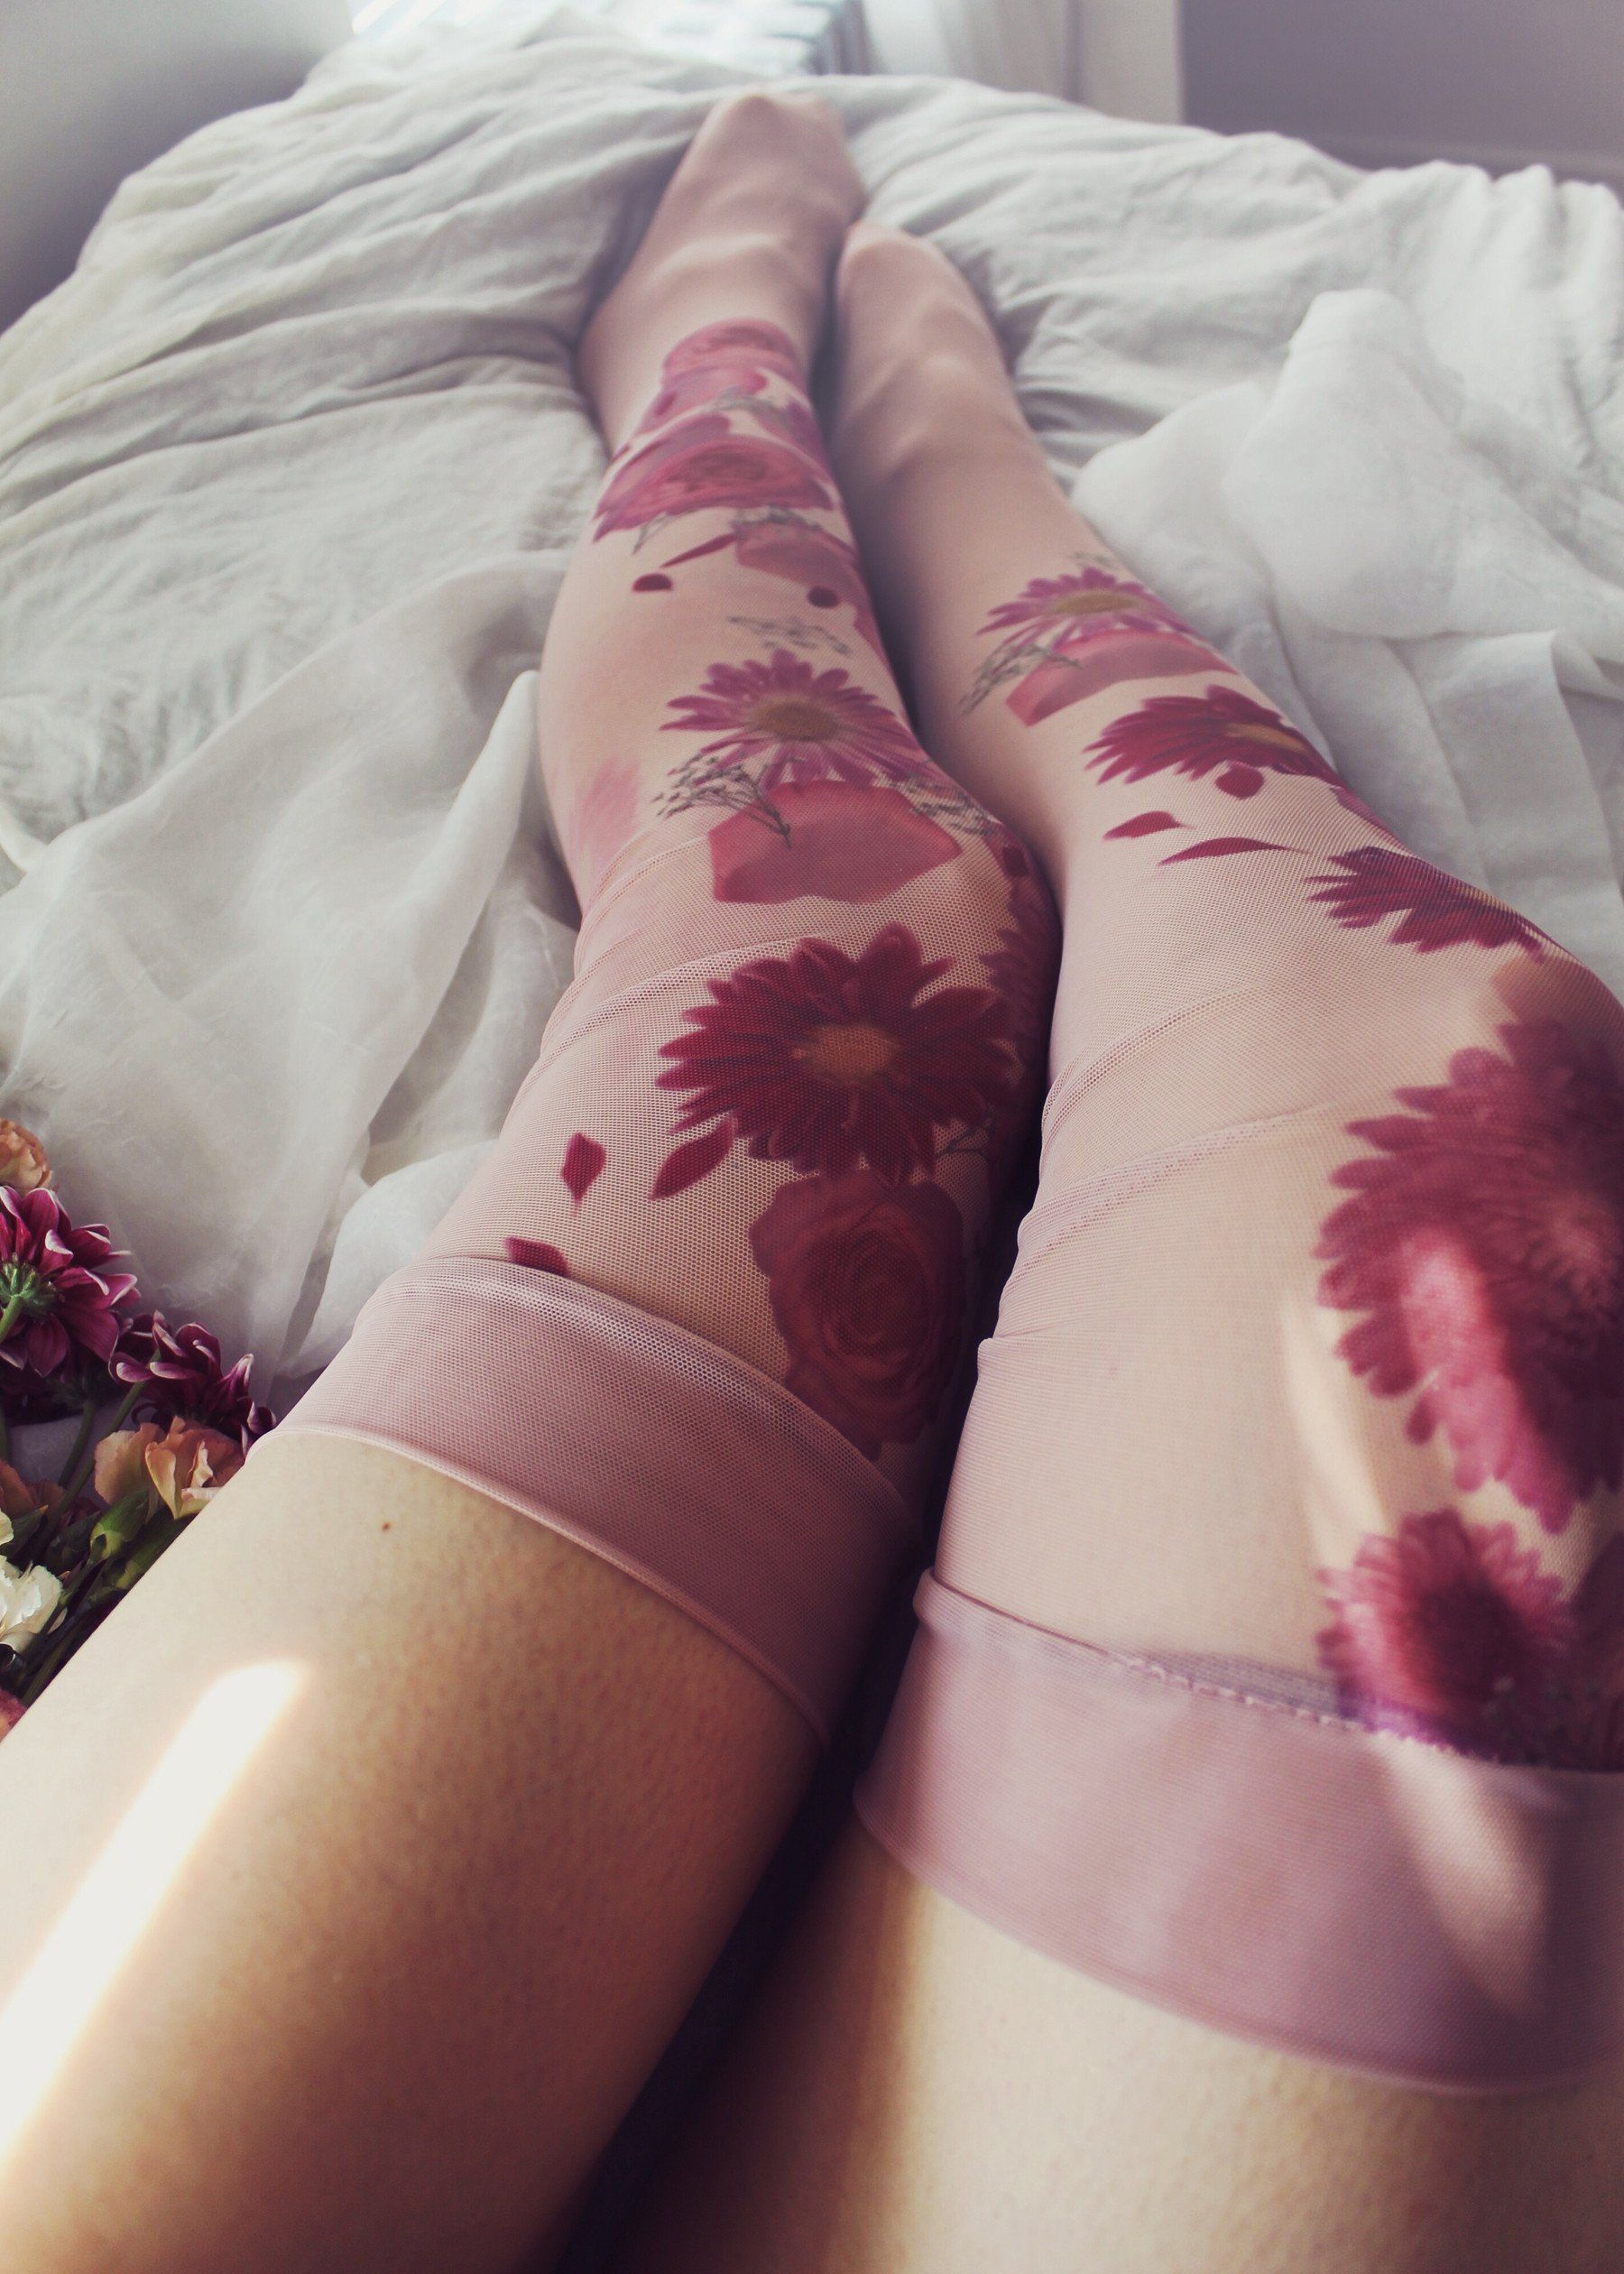 b6e6c4596 Flora Mirage thigh-highs use our photorealistic dye technique to print  images of real flowers to your stockings! Complete the look with our  matching garter.